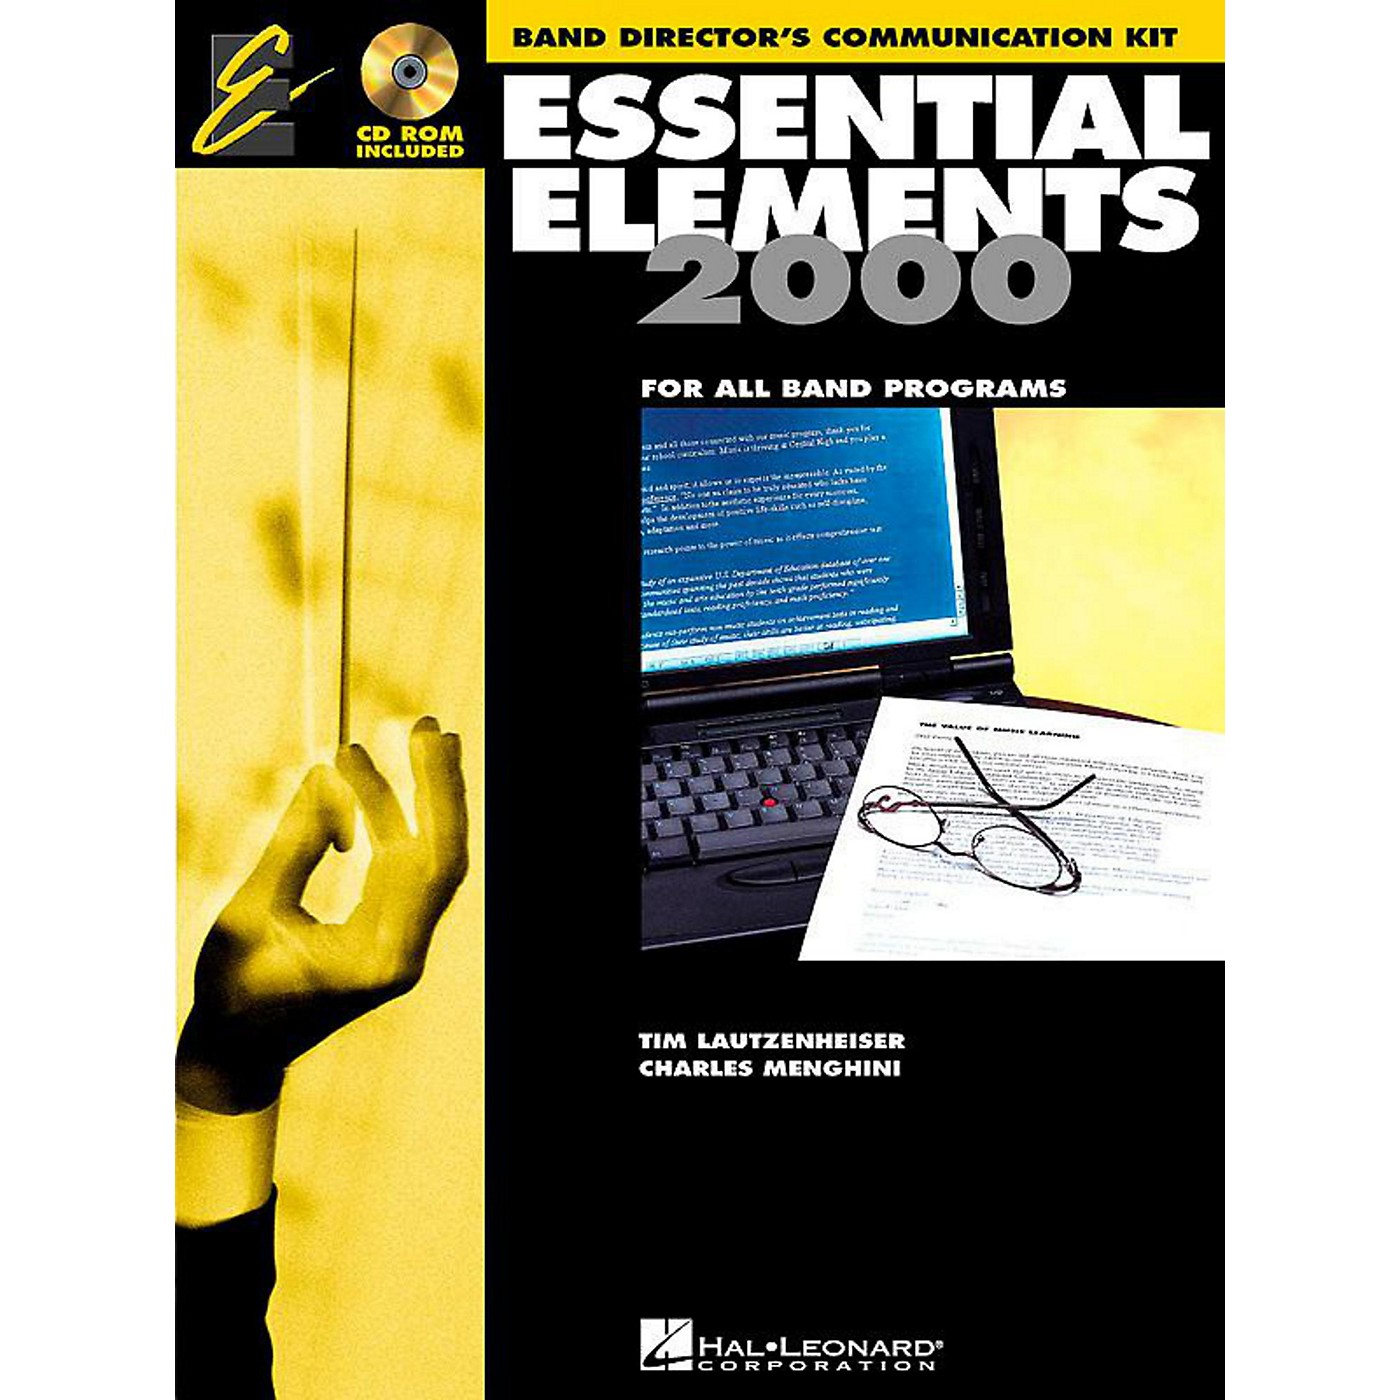 Hal Leonard Essential Elements 2000 for Band - Band Director's Communication Kit (Book 1 with CD-ROM) thumbnail